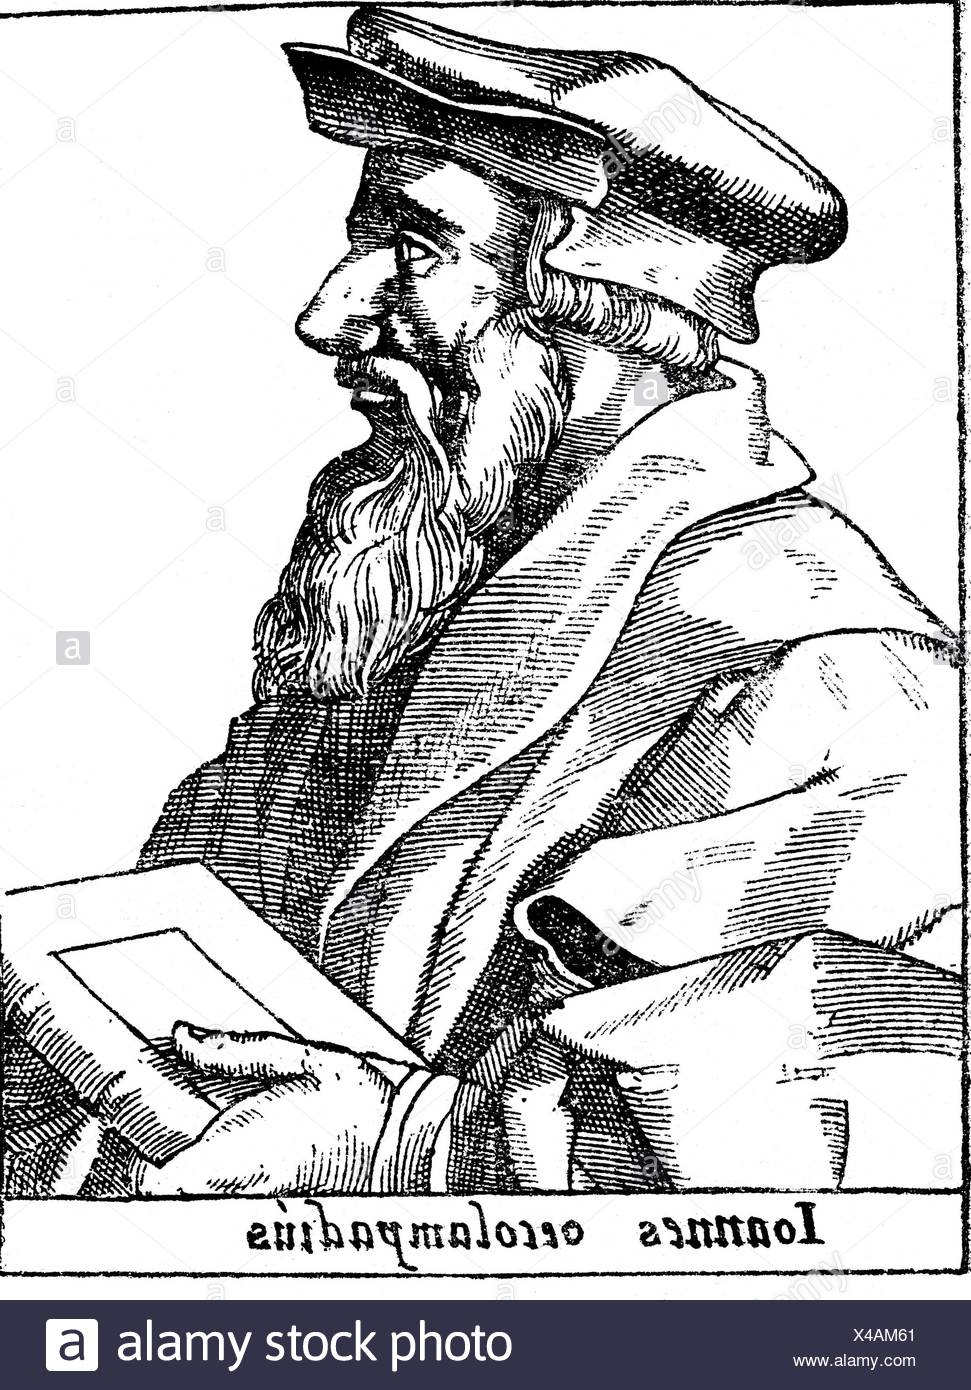 Oecolampadius, Johannes, 1482 - 24.11.1531, German reformer, half length, woodcut, 16th century, , Additional-Rights-Clearances-NA - Stock Image